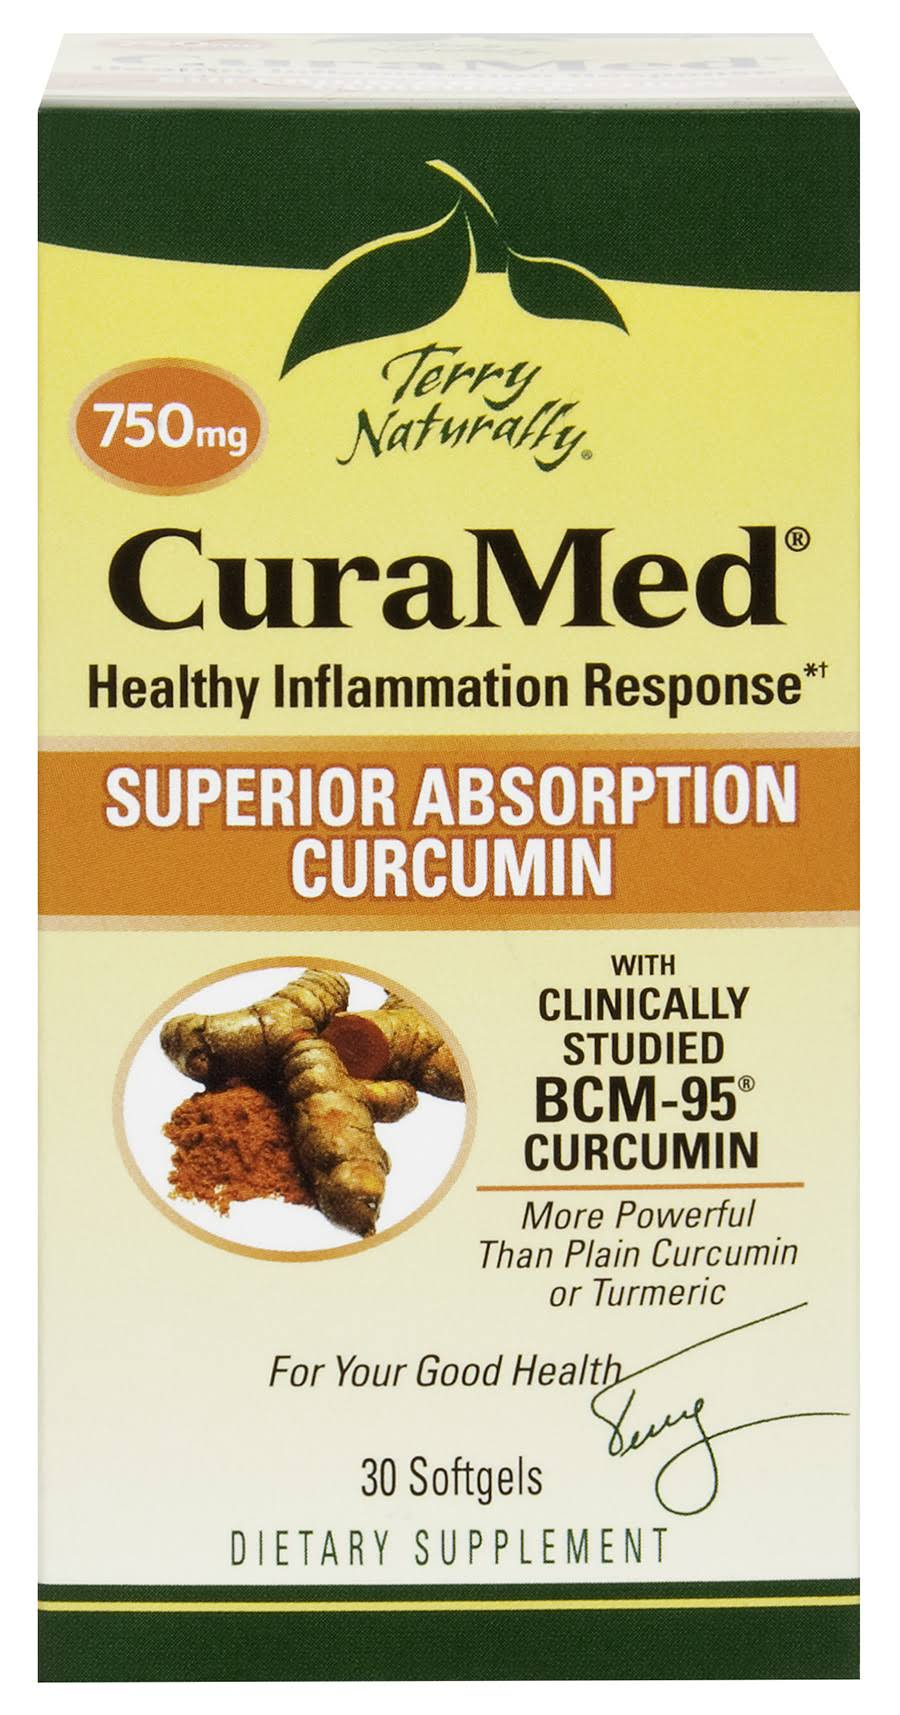 Terry Naturally CuraMed 750mg - 30 Softgels